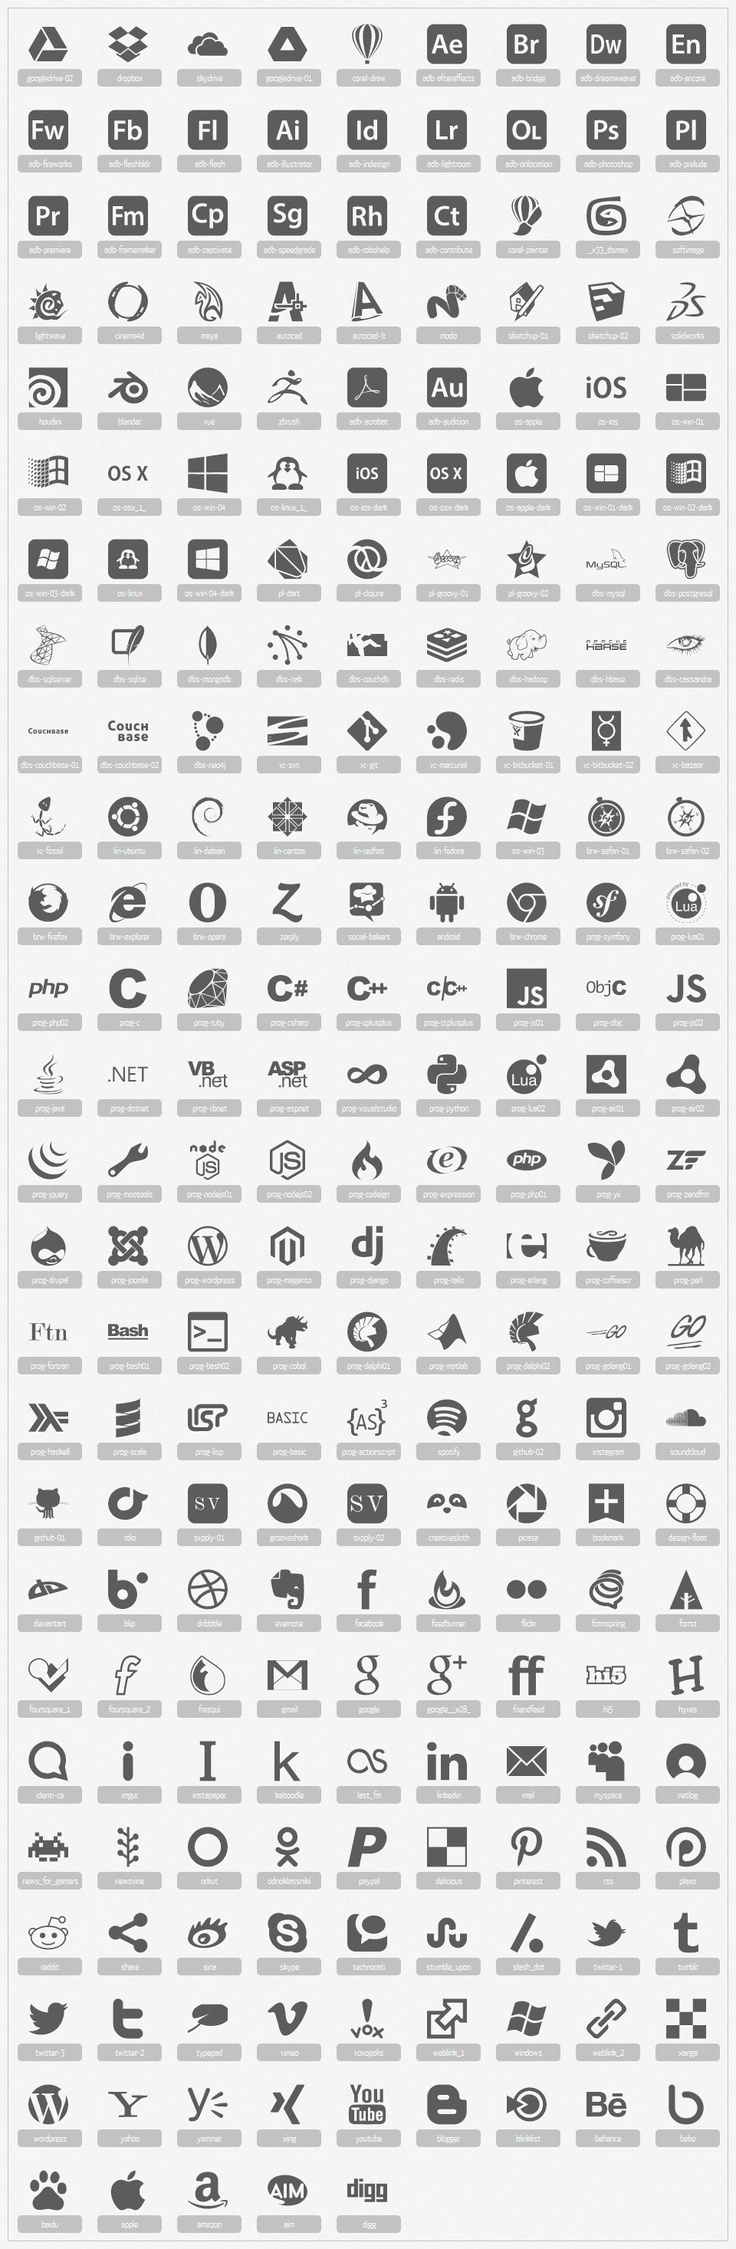 Download lots of free Pictonic Font icons: https://pictonic.co/free